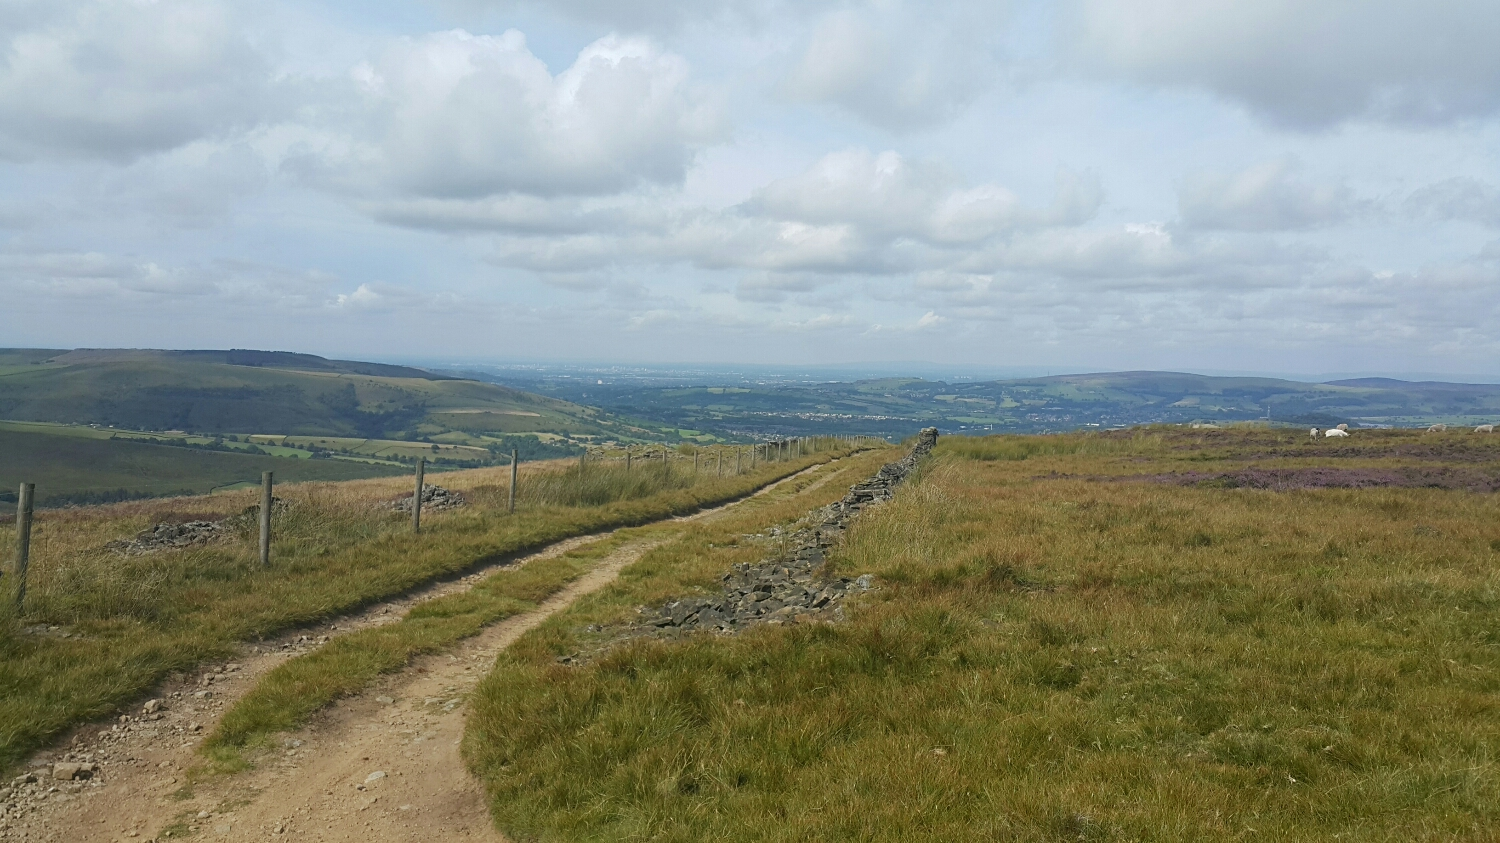 The way up is on a stoney farmers track. Miles and miles of stone fences built with out any mortar.